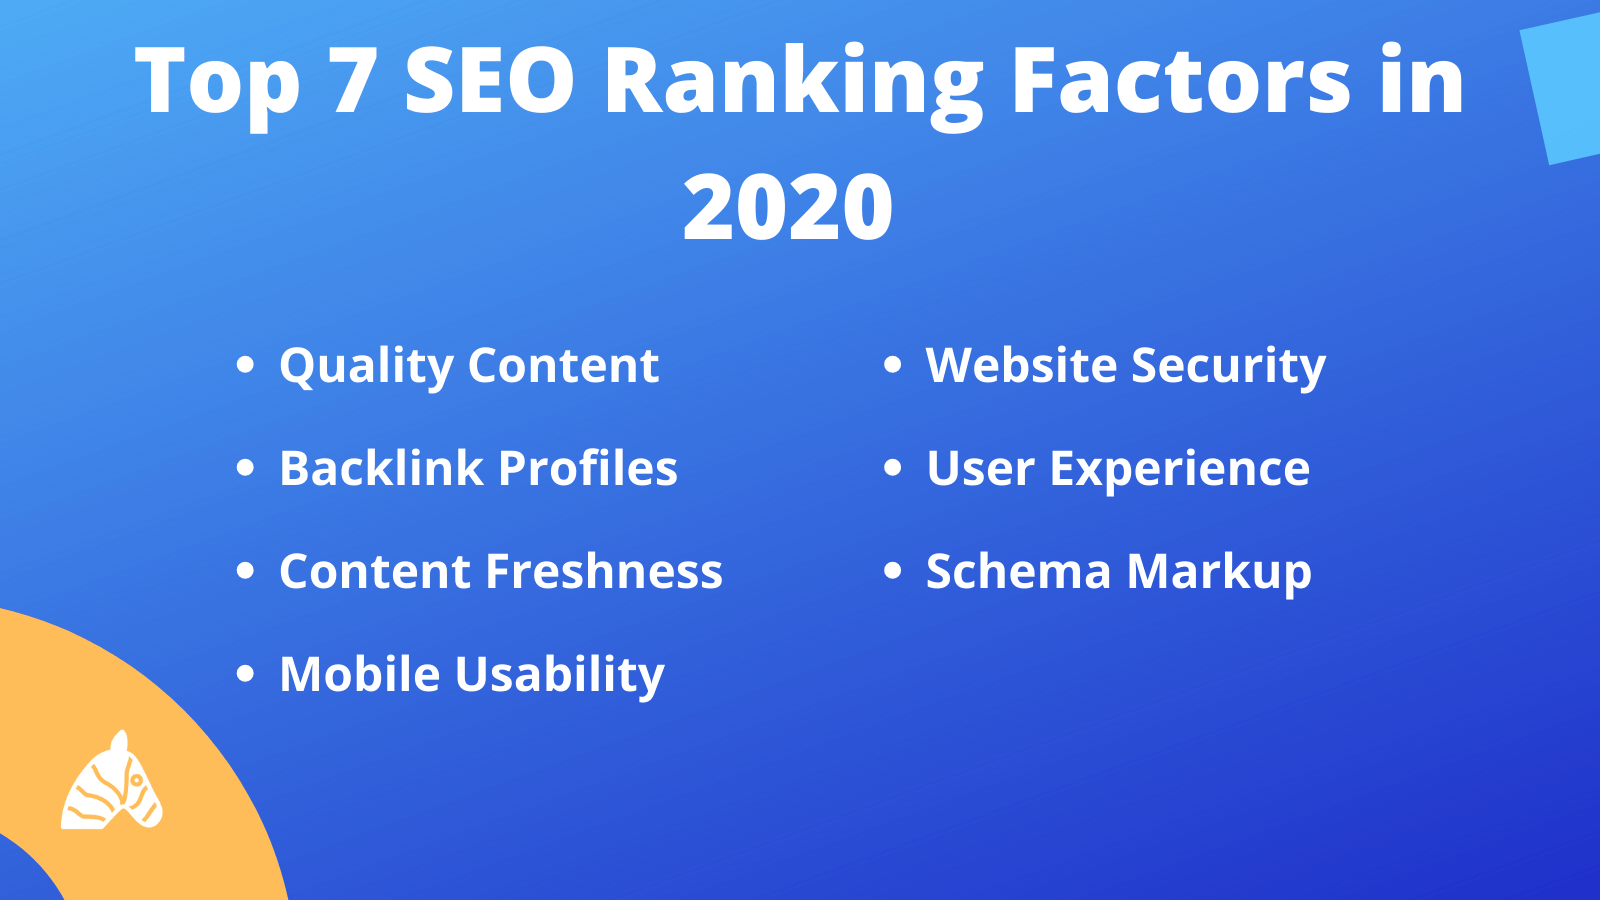 Top 7 SEO ranking factors in 2020 divided into sub-categories